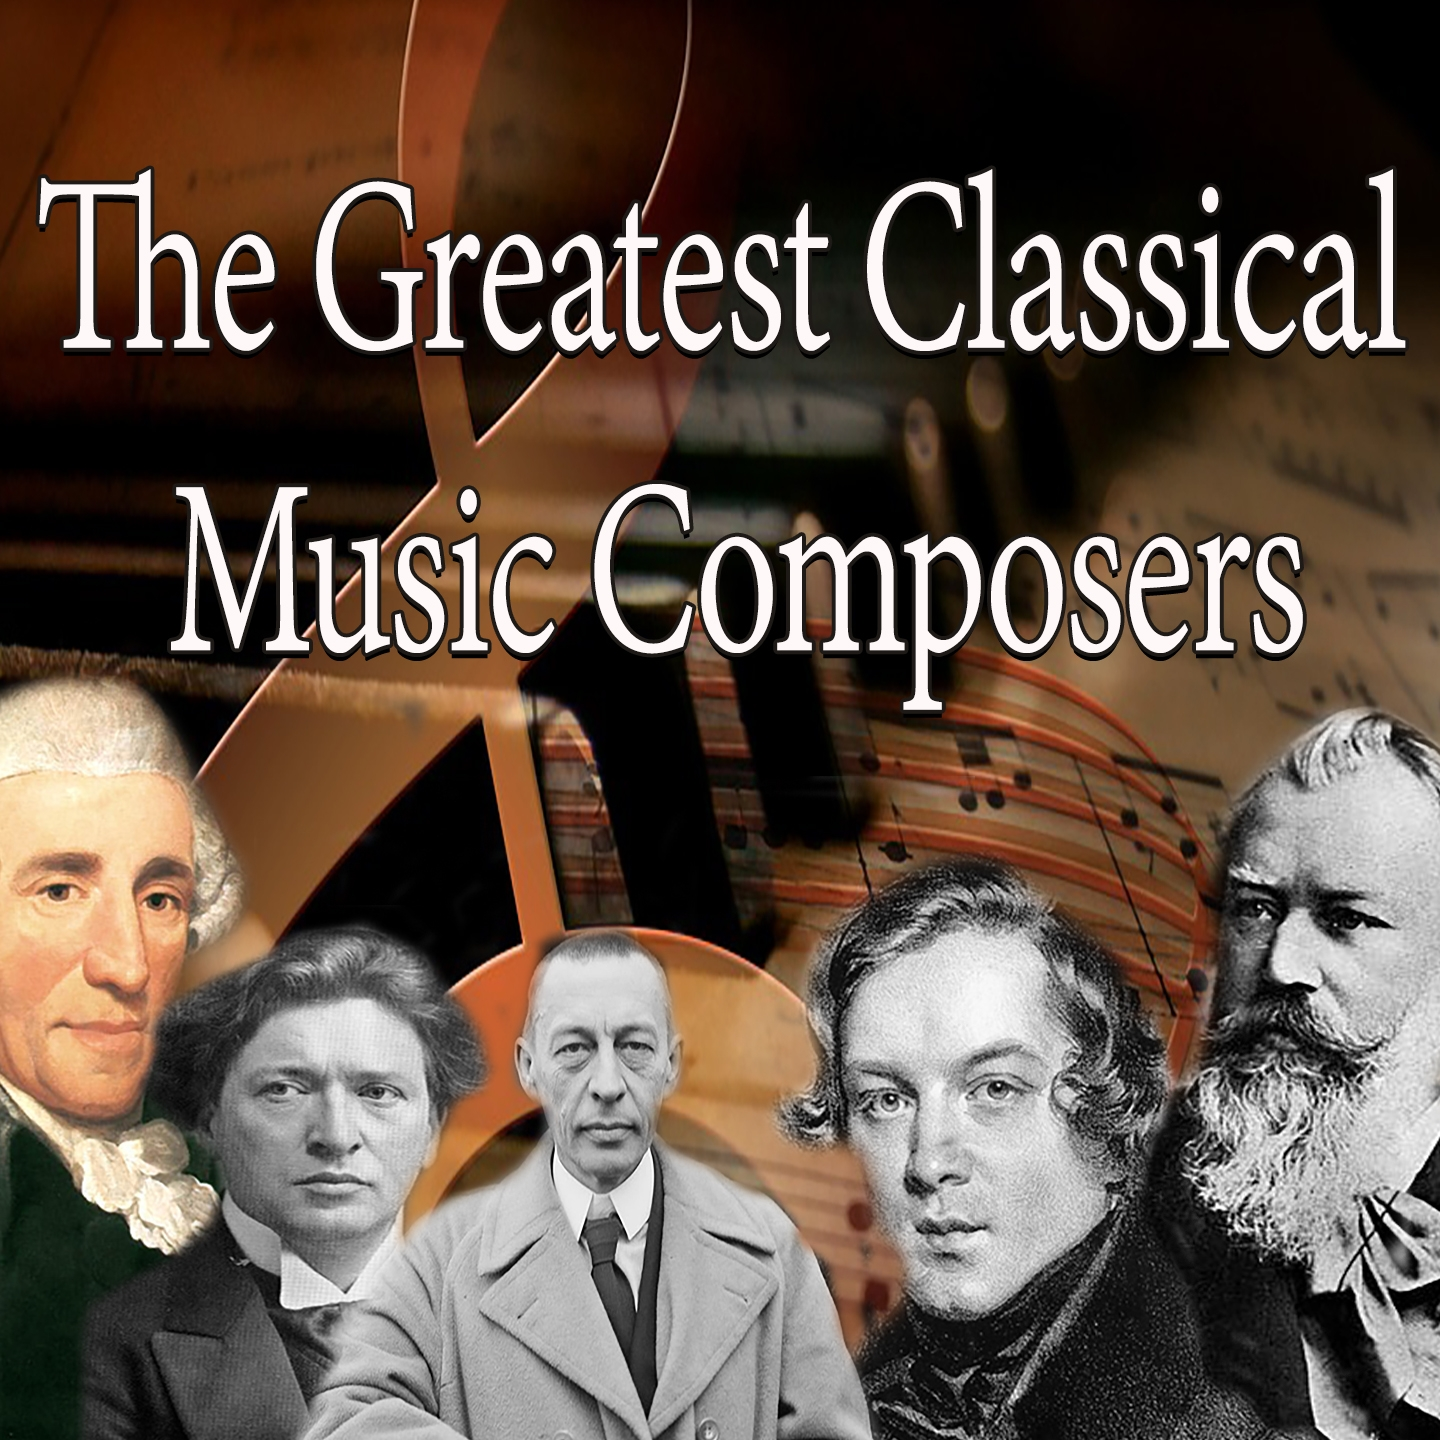 The Greatest Classical Music Composers